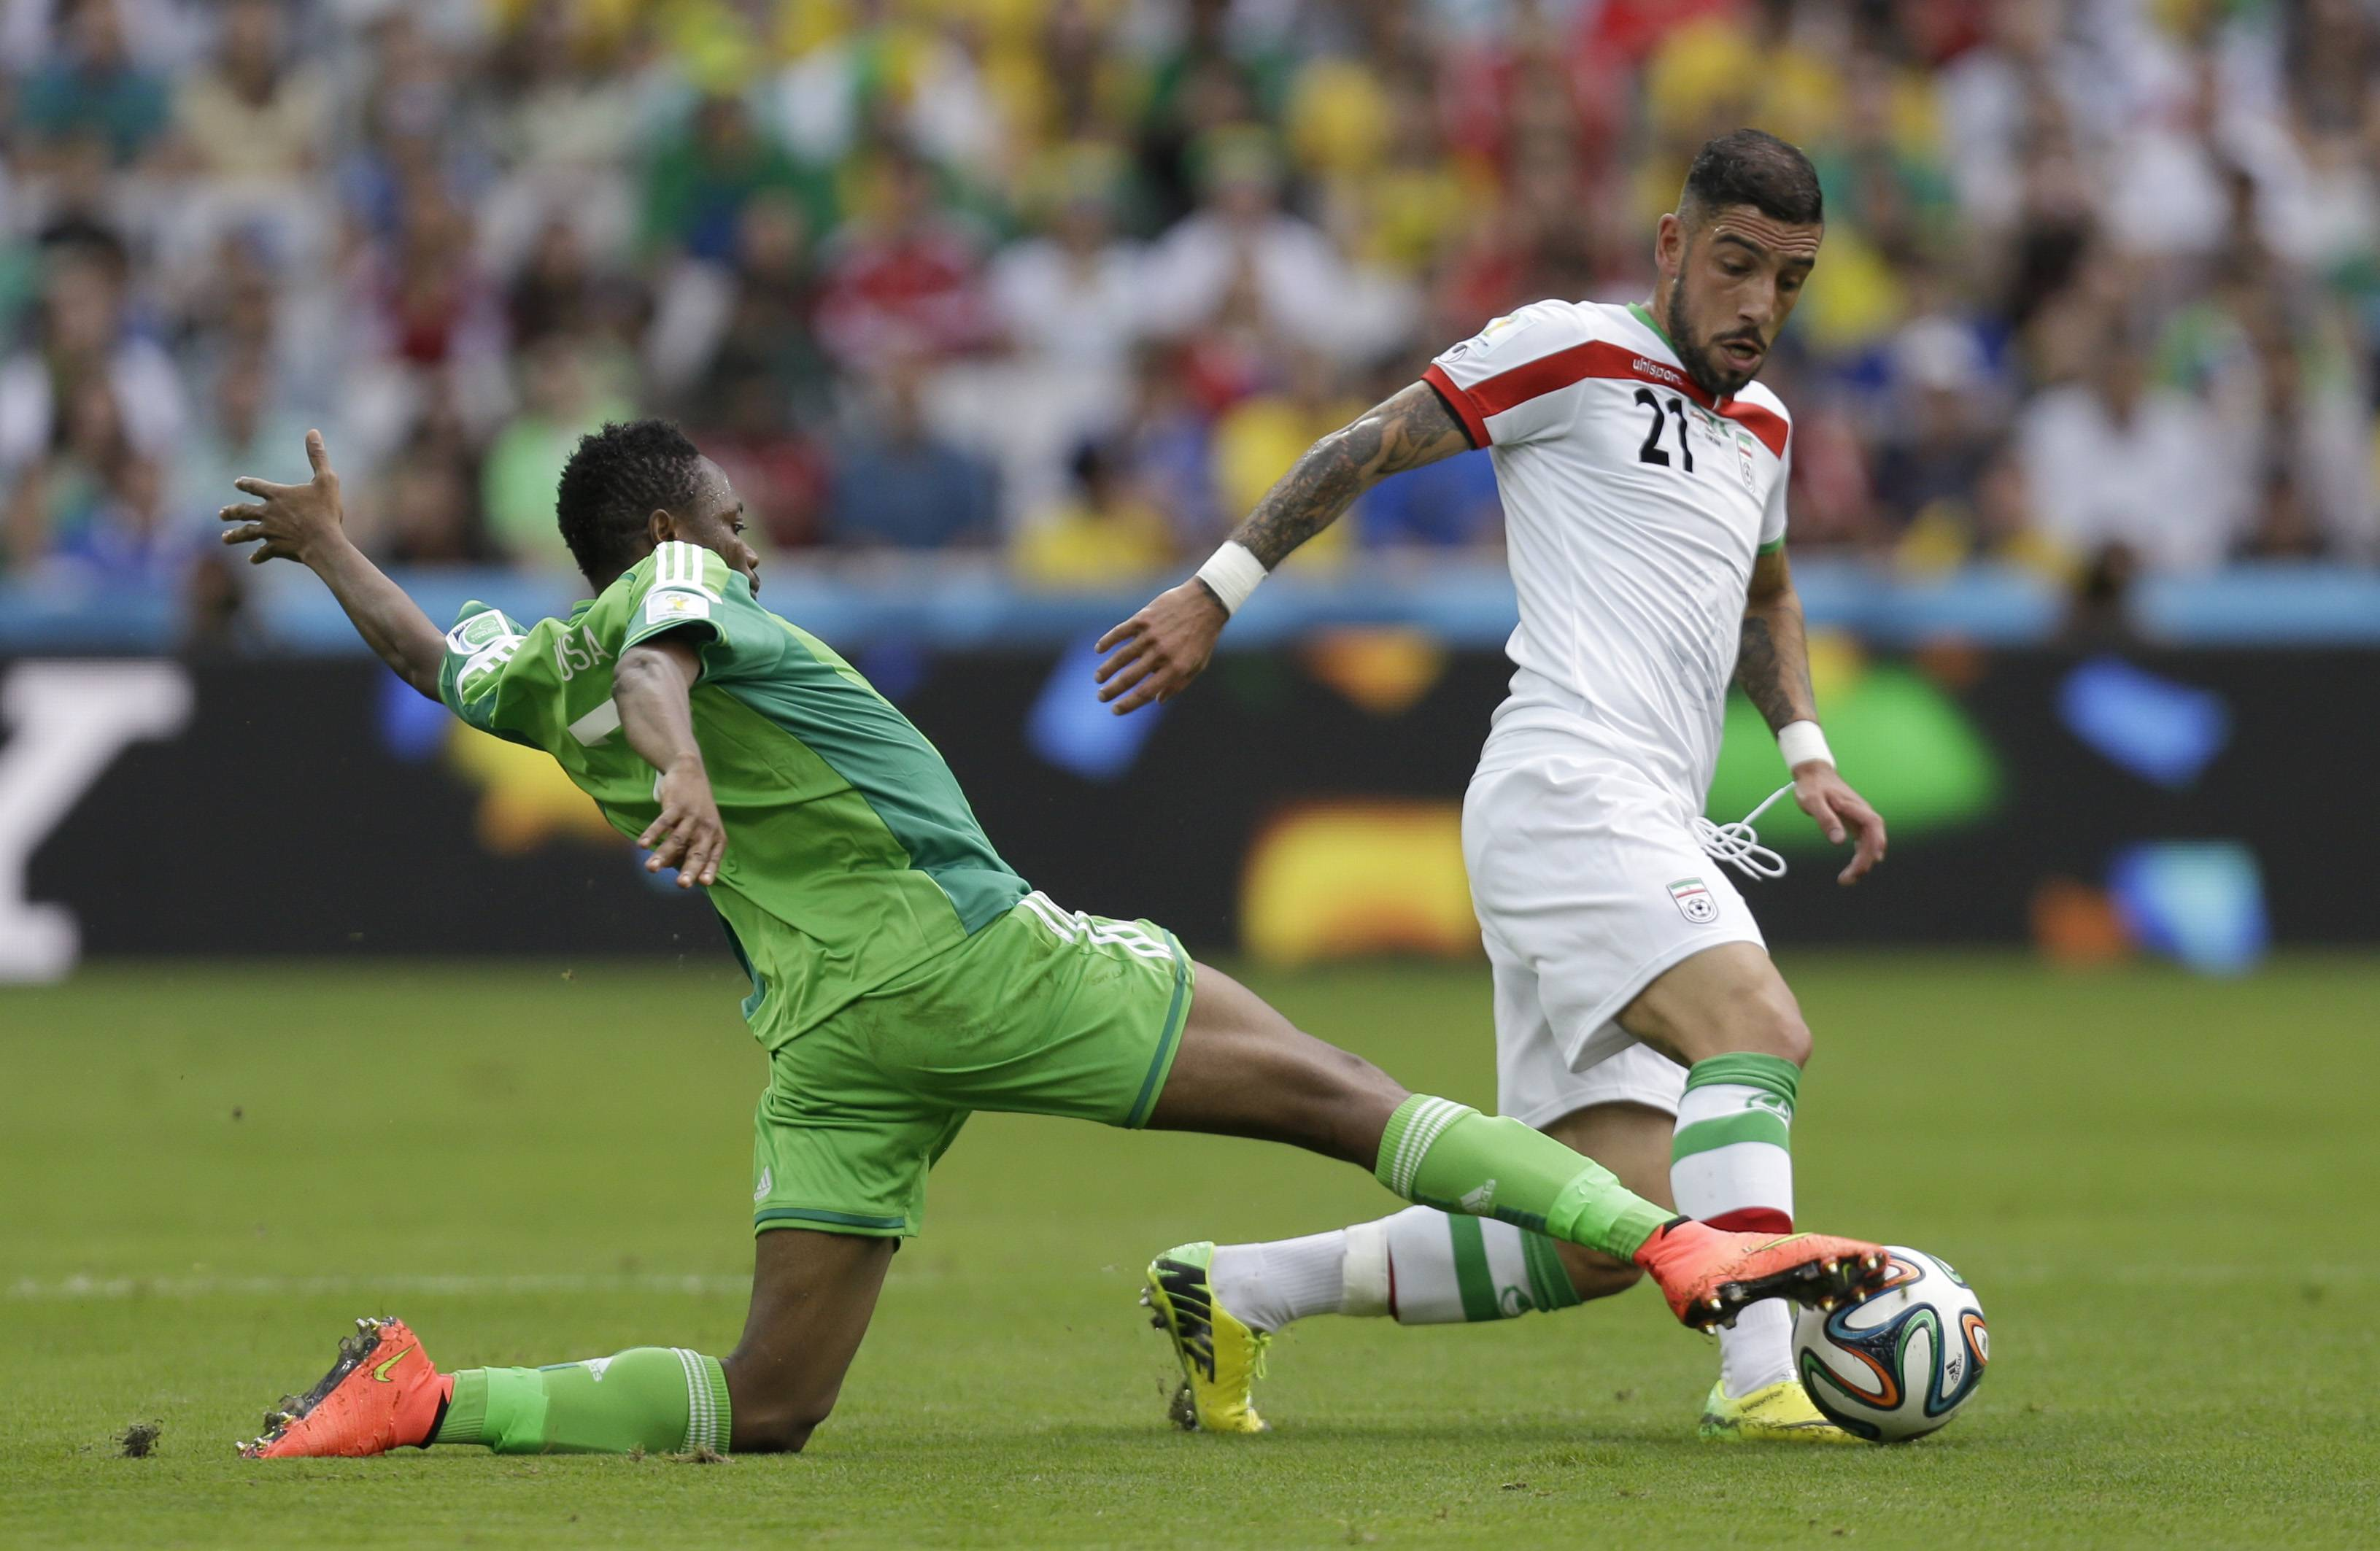 Nigeria's Ahmed Musa, left, challenges Iran's Ashkan Dejagah during the group F World Cup soccer match between Iran and Nigeria at the Arena da Baixada in Curitiba, Brazil, Monday.